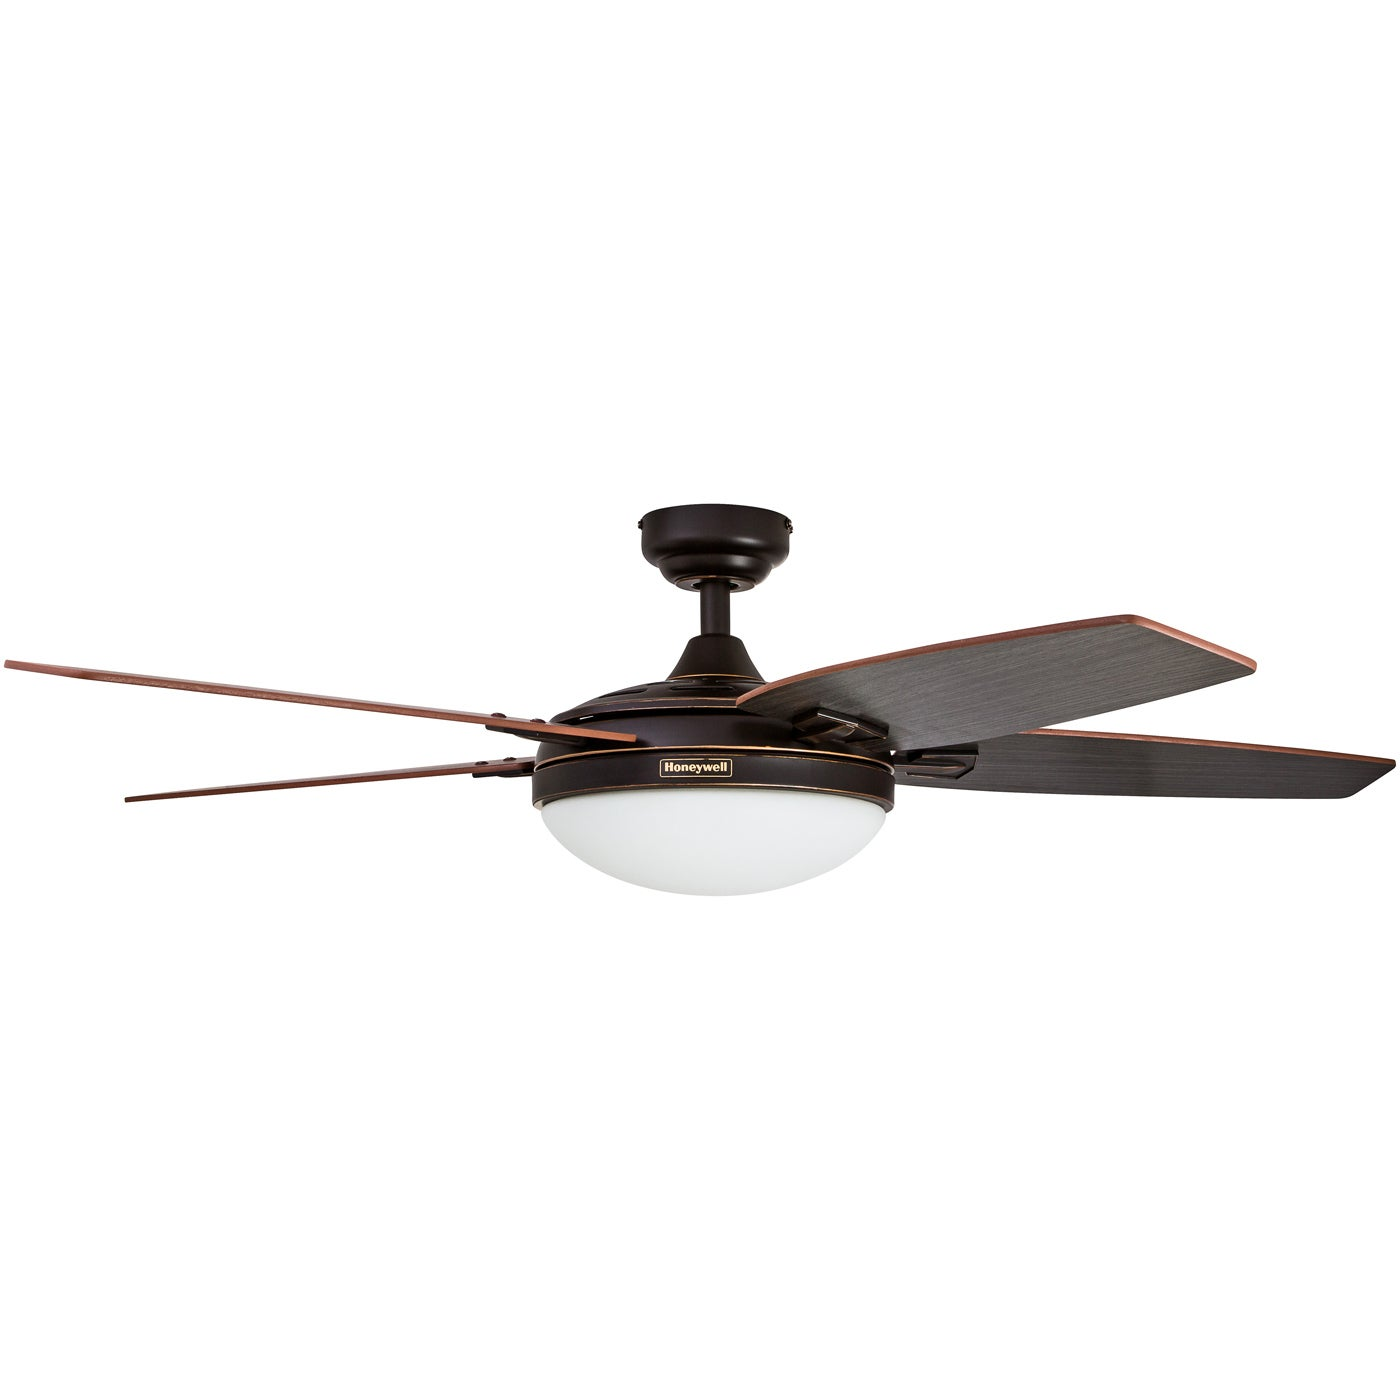 "48"" Honeywell Carmel Oil Rubbed Bronze Ceiling Fan with Integrated"